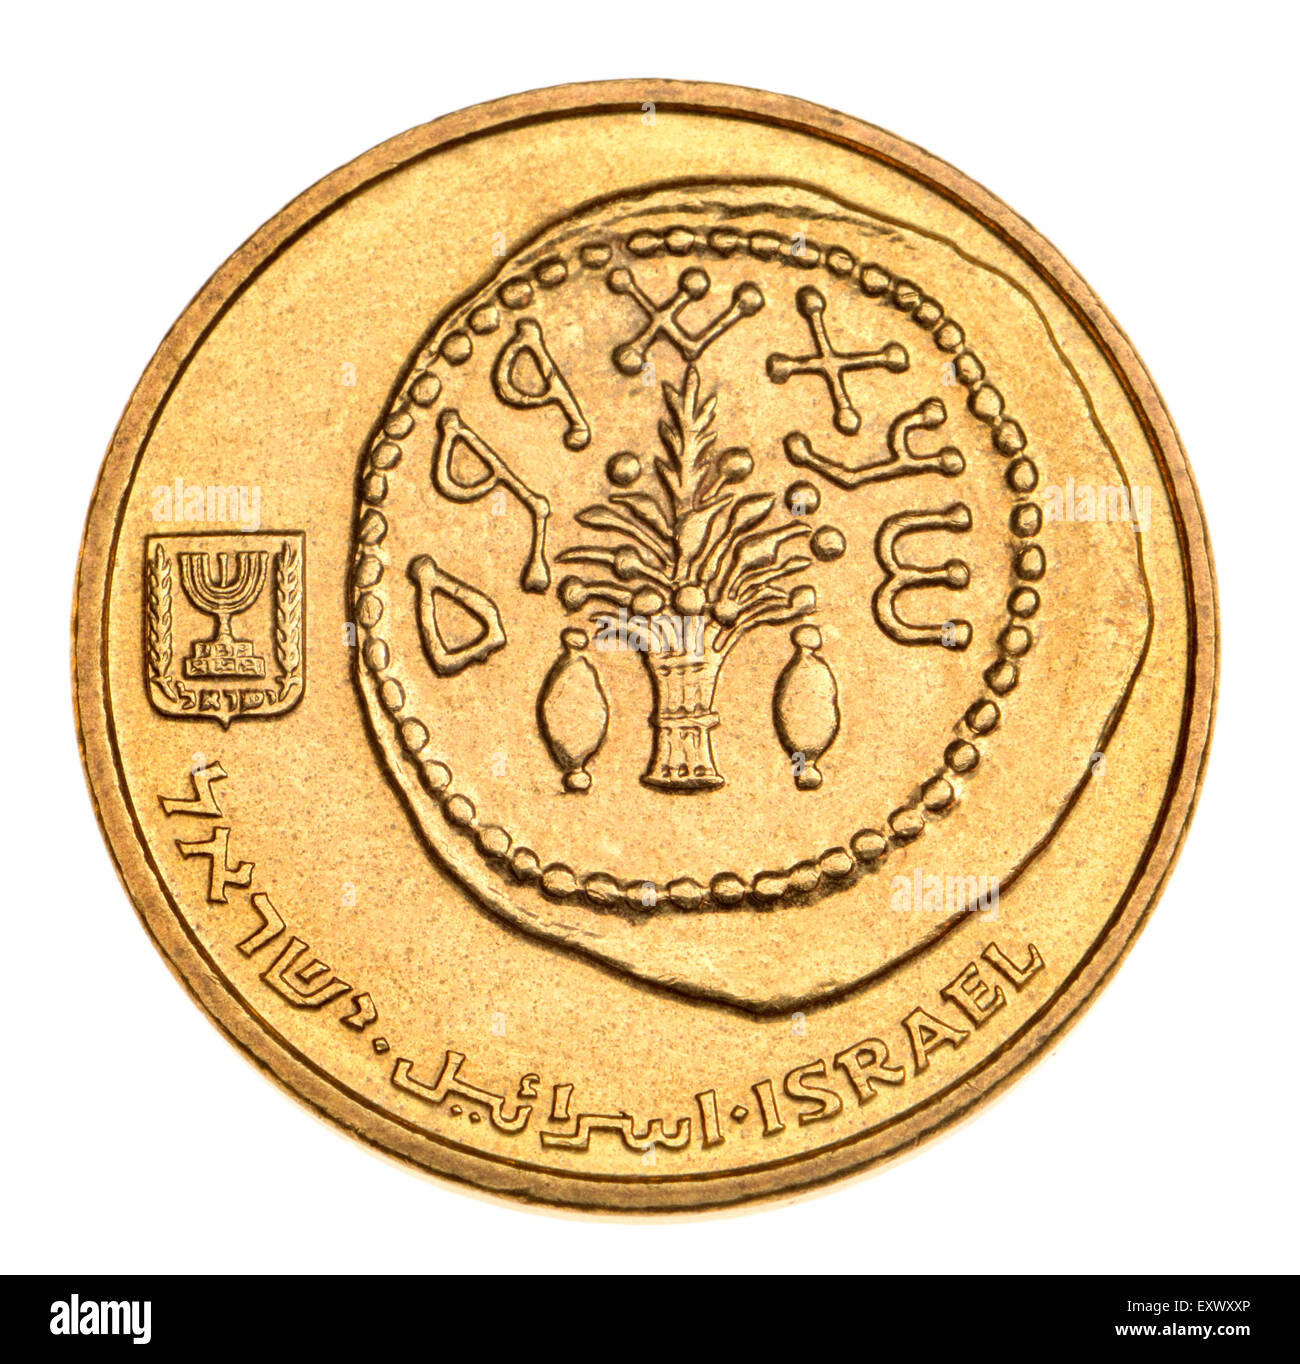 Israel 5 Agorot coin with design based on an ancient coin featuring a lulav (palm frond) and two etrogim (lemons) - Stock Image